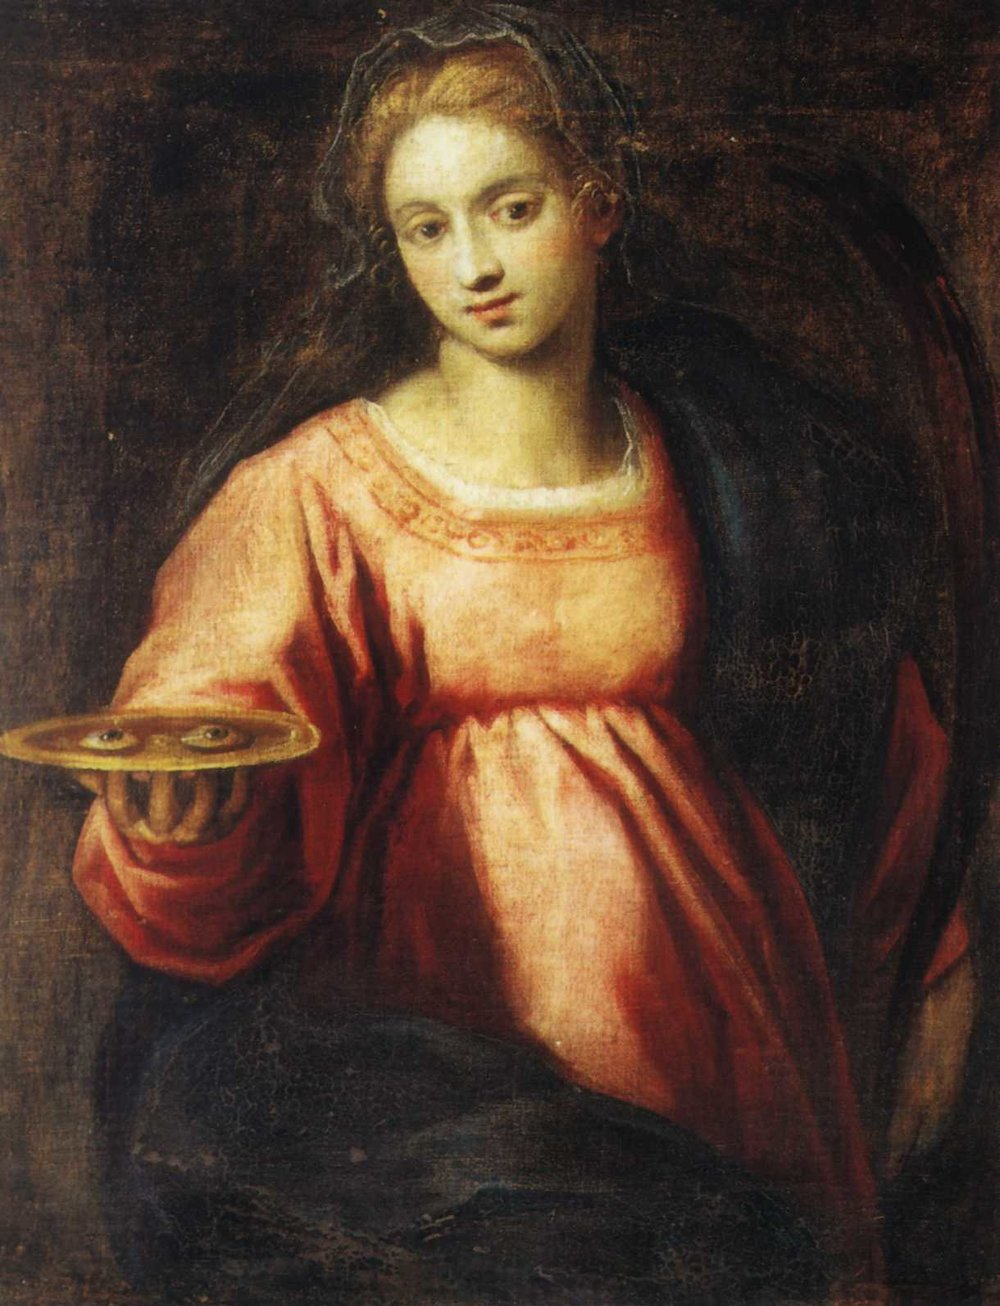 A Painting of Saint Lucy holding her gouged eyes on a platter